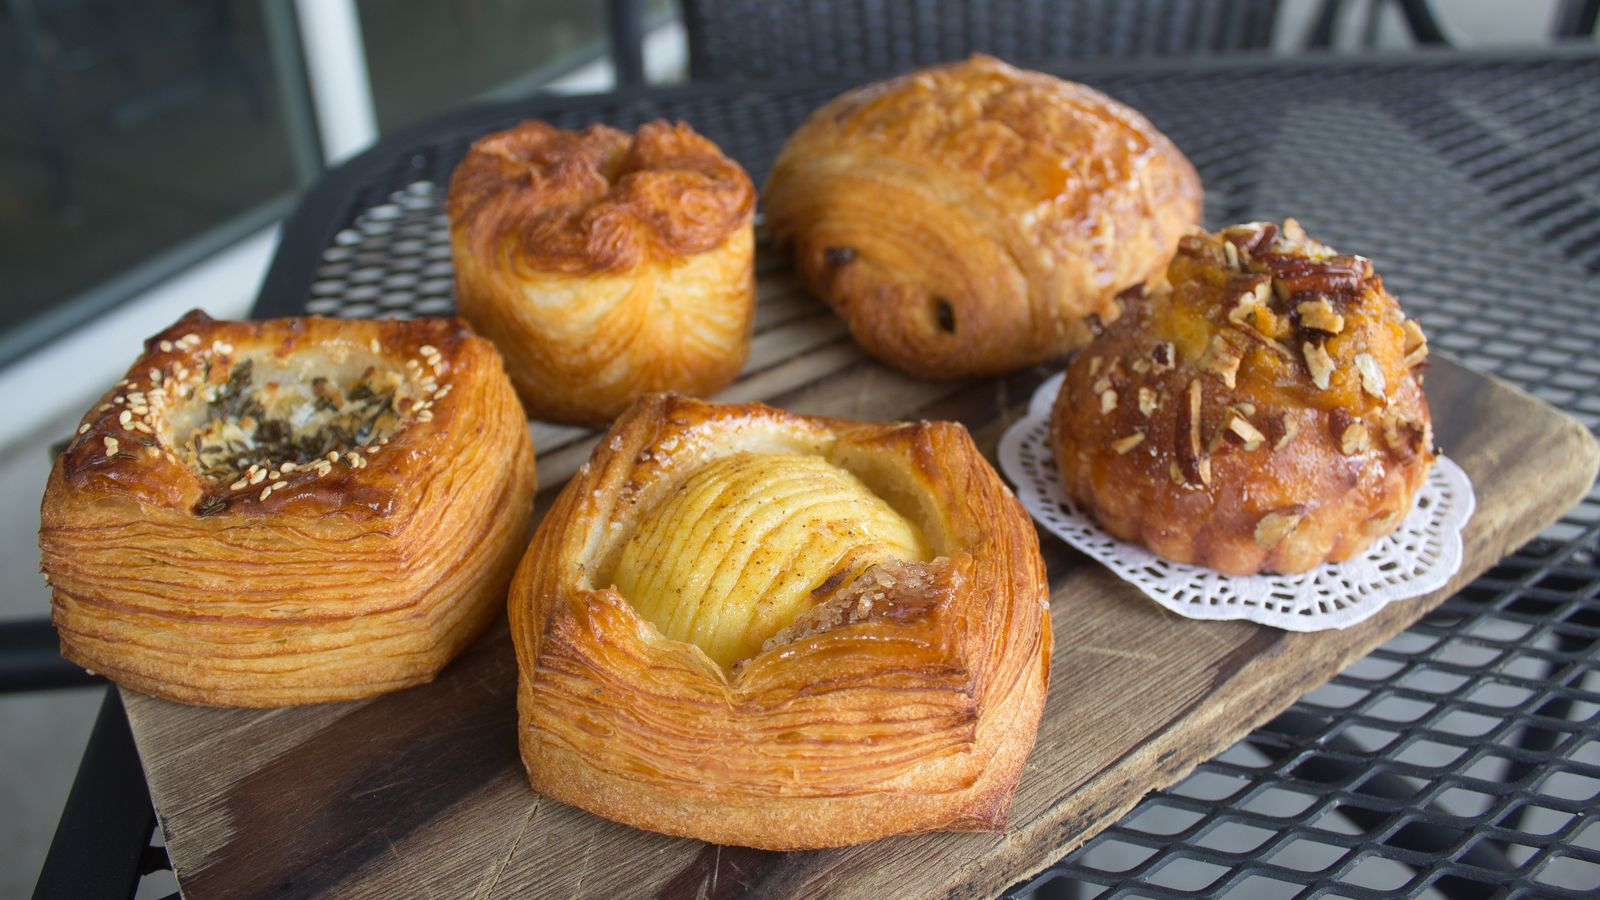 Delving Into Odd Duck's Heavenly Brunch Pastry Tray